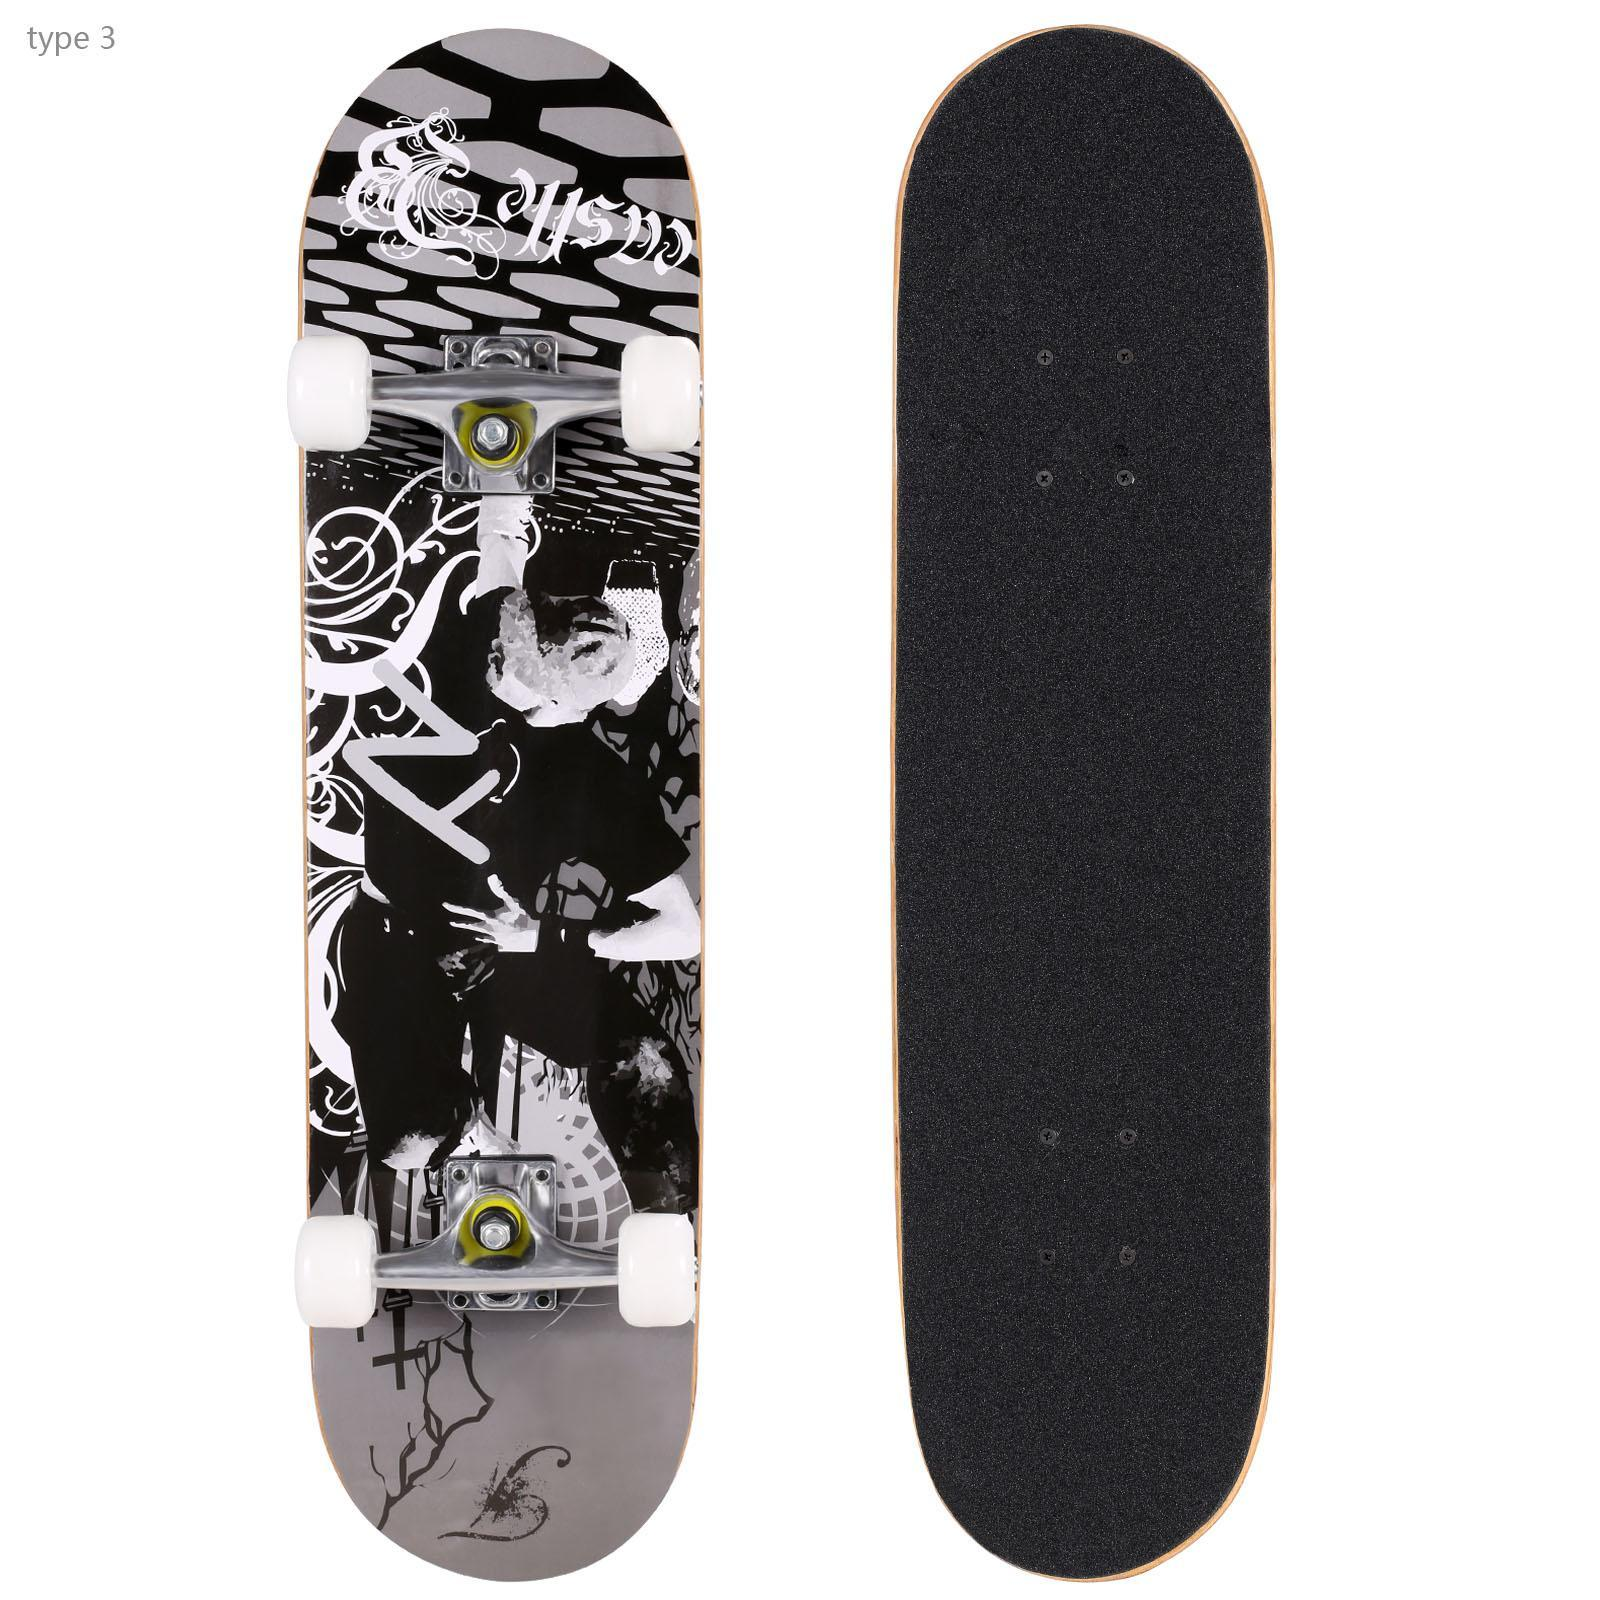 BLANK COMPLETE Skateboard BLACK DP 7.25 MIN Skateboards